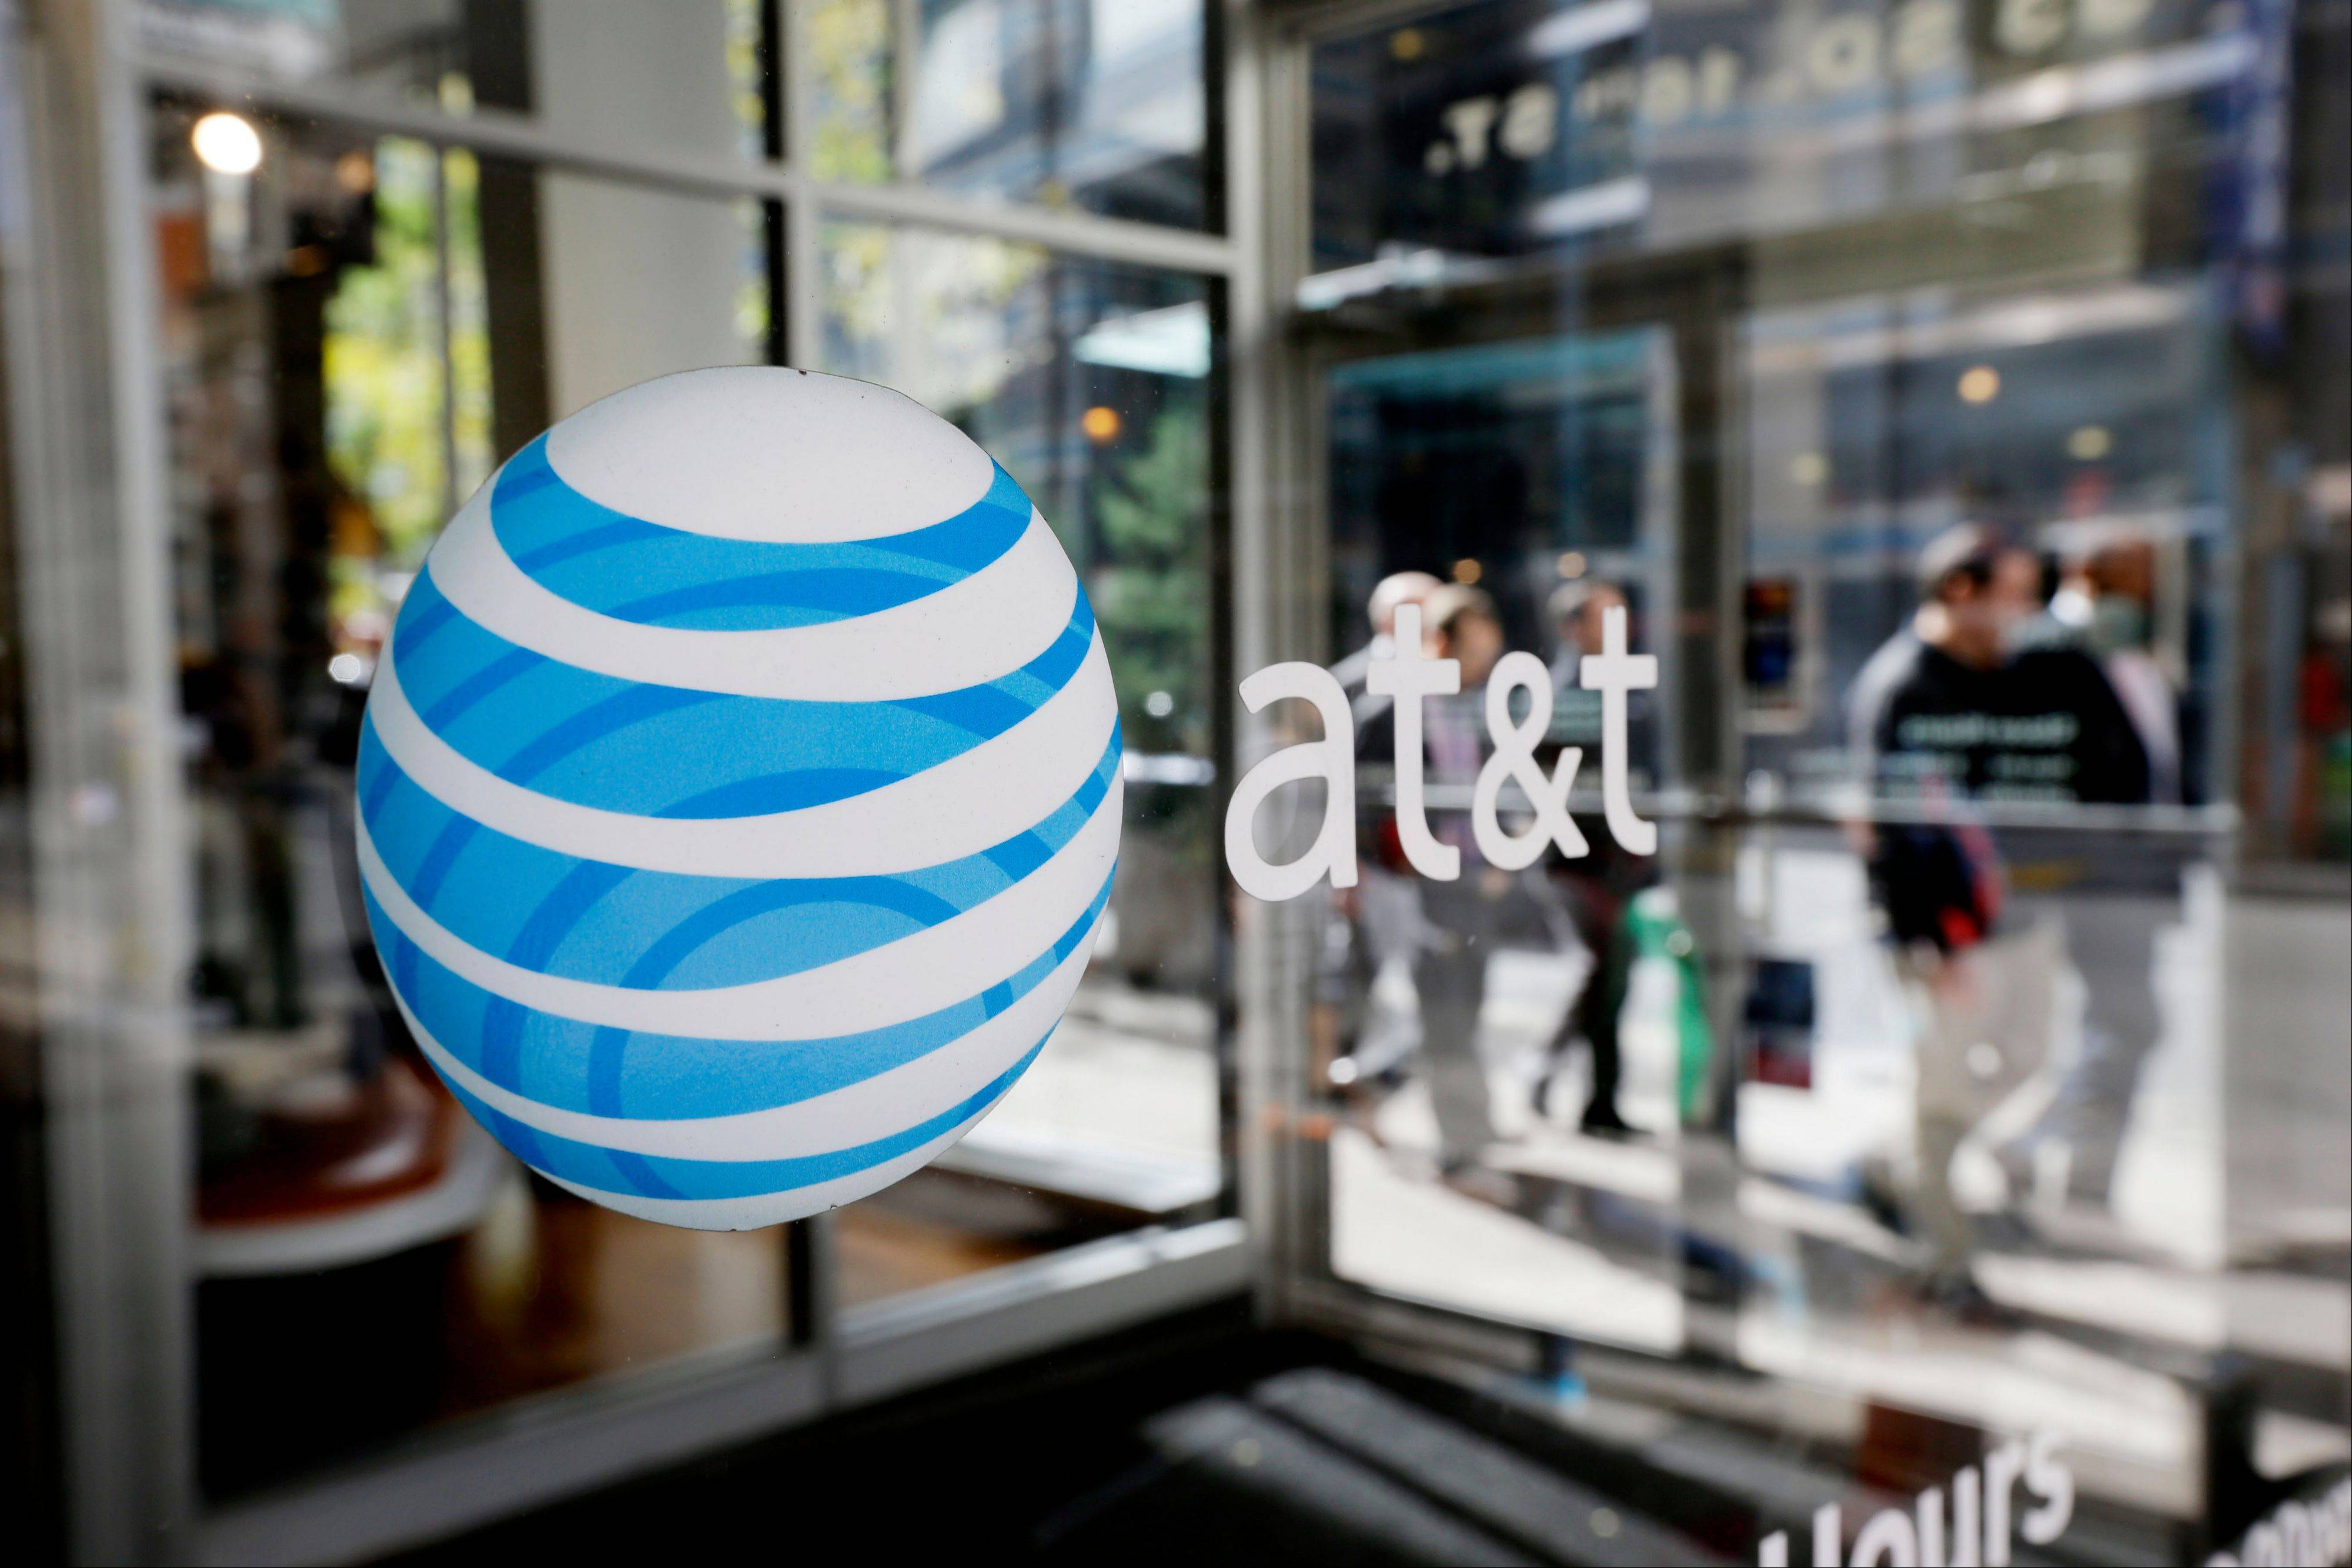 Over the last several years, AT&T has poured tens of billions of dollars into improving its network.